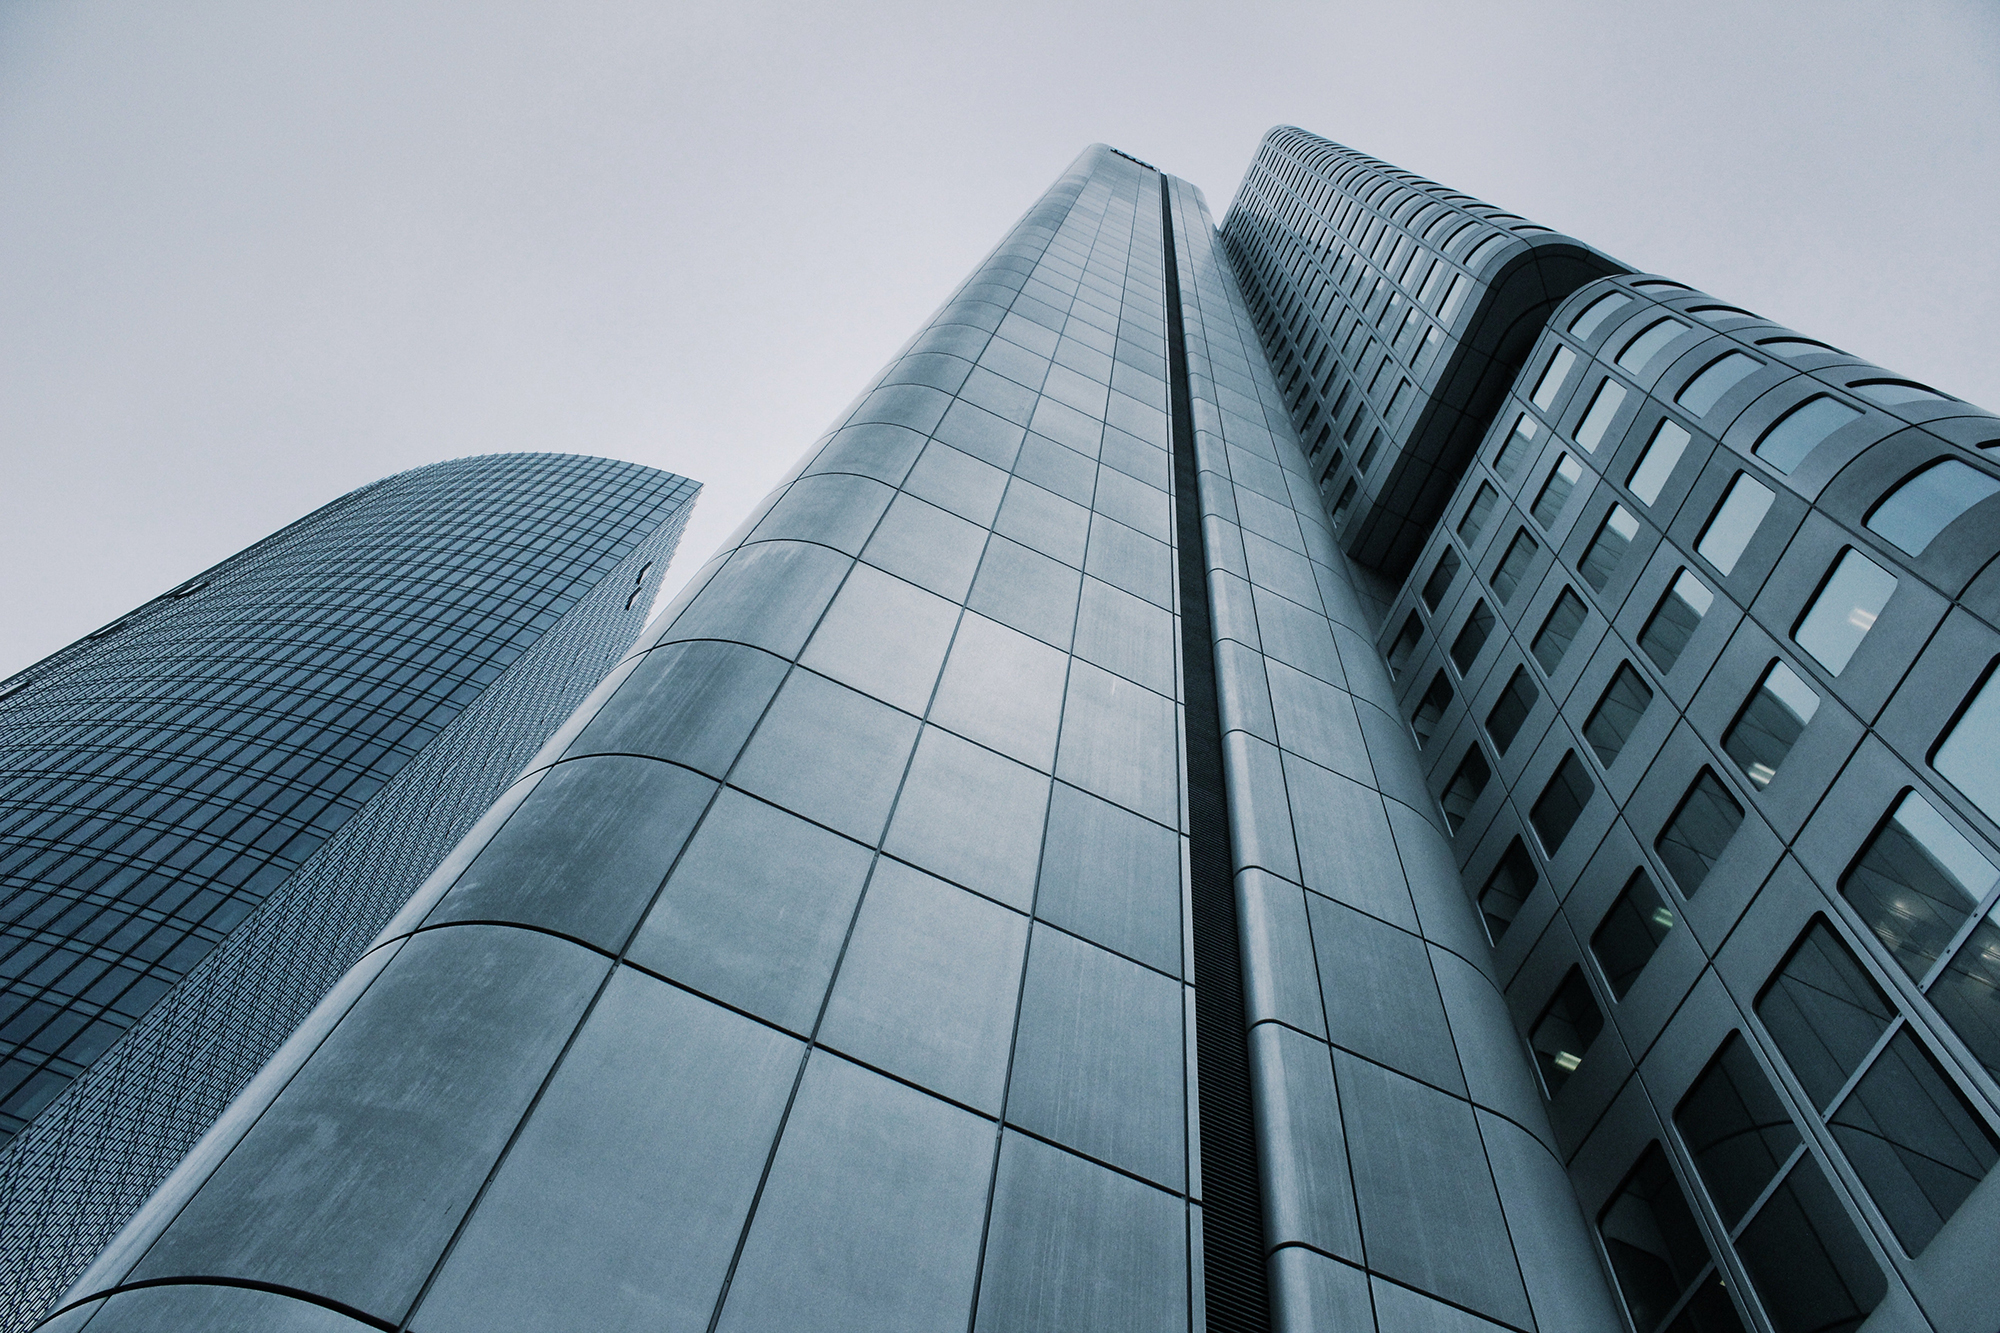 architecture-black-and-white-building-273209.jpg